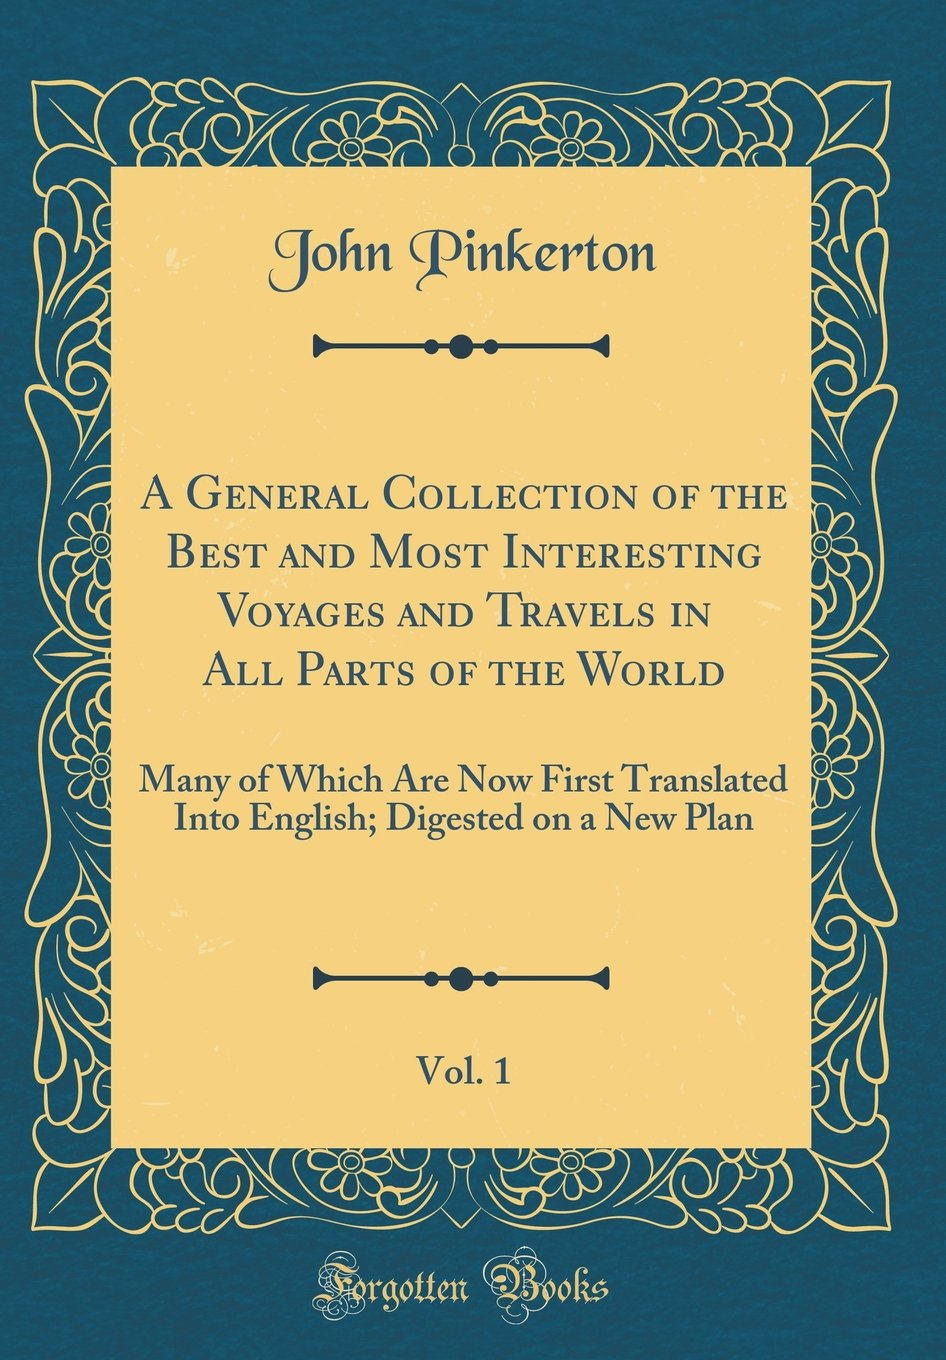 A General Collection of the Best and Most Interesting Voyages and Travels in All Parts of the World, Vol. 1: Many of Which Are Now First Translated ... Digested on a New Plan (Classic Reprint) pdf